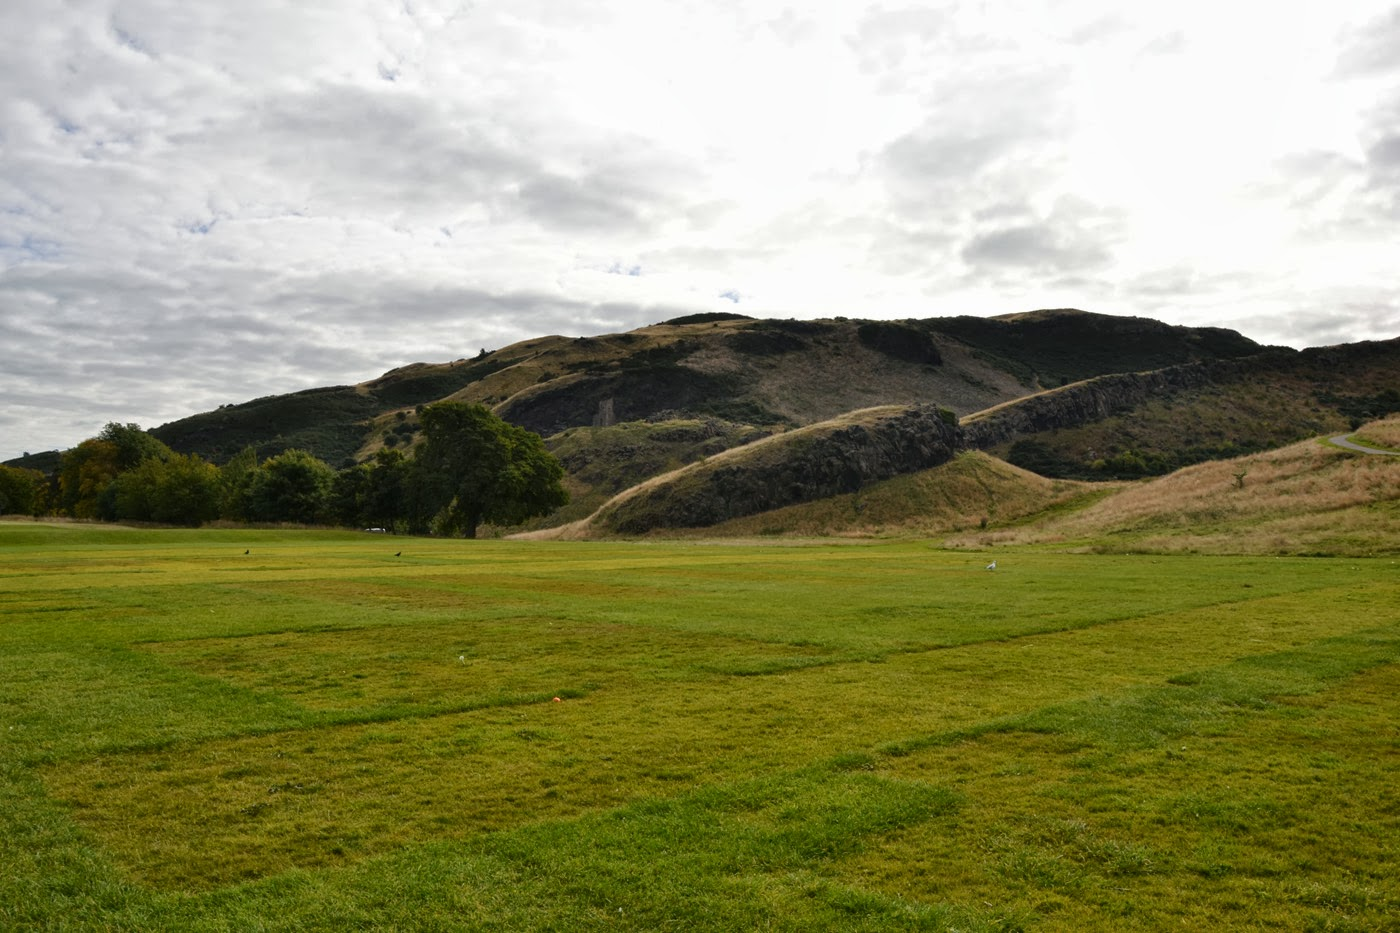 Holyrood park (Edinburgh / Scotland) by XOANYU.